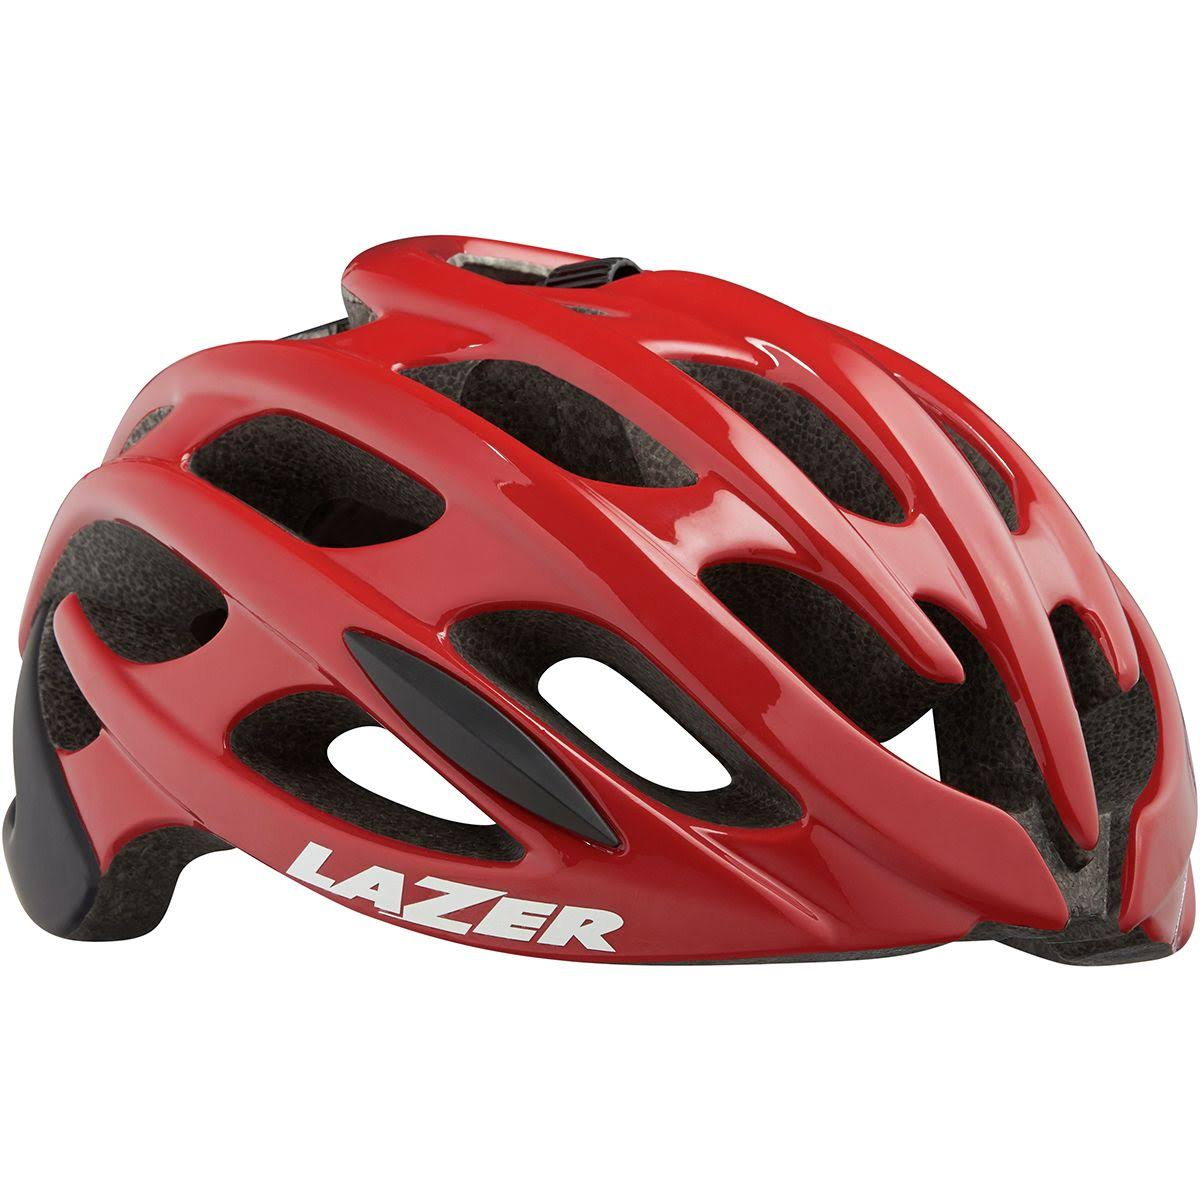 Lazer Men's Blade Plus + Cycling Helmet - Red, Small